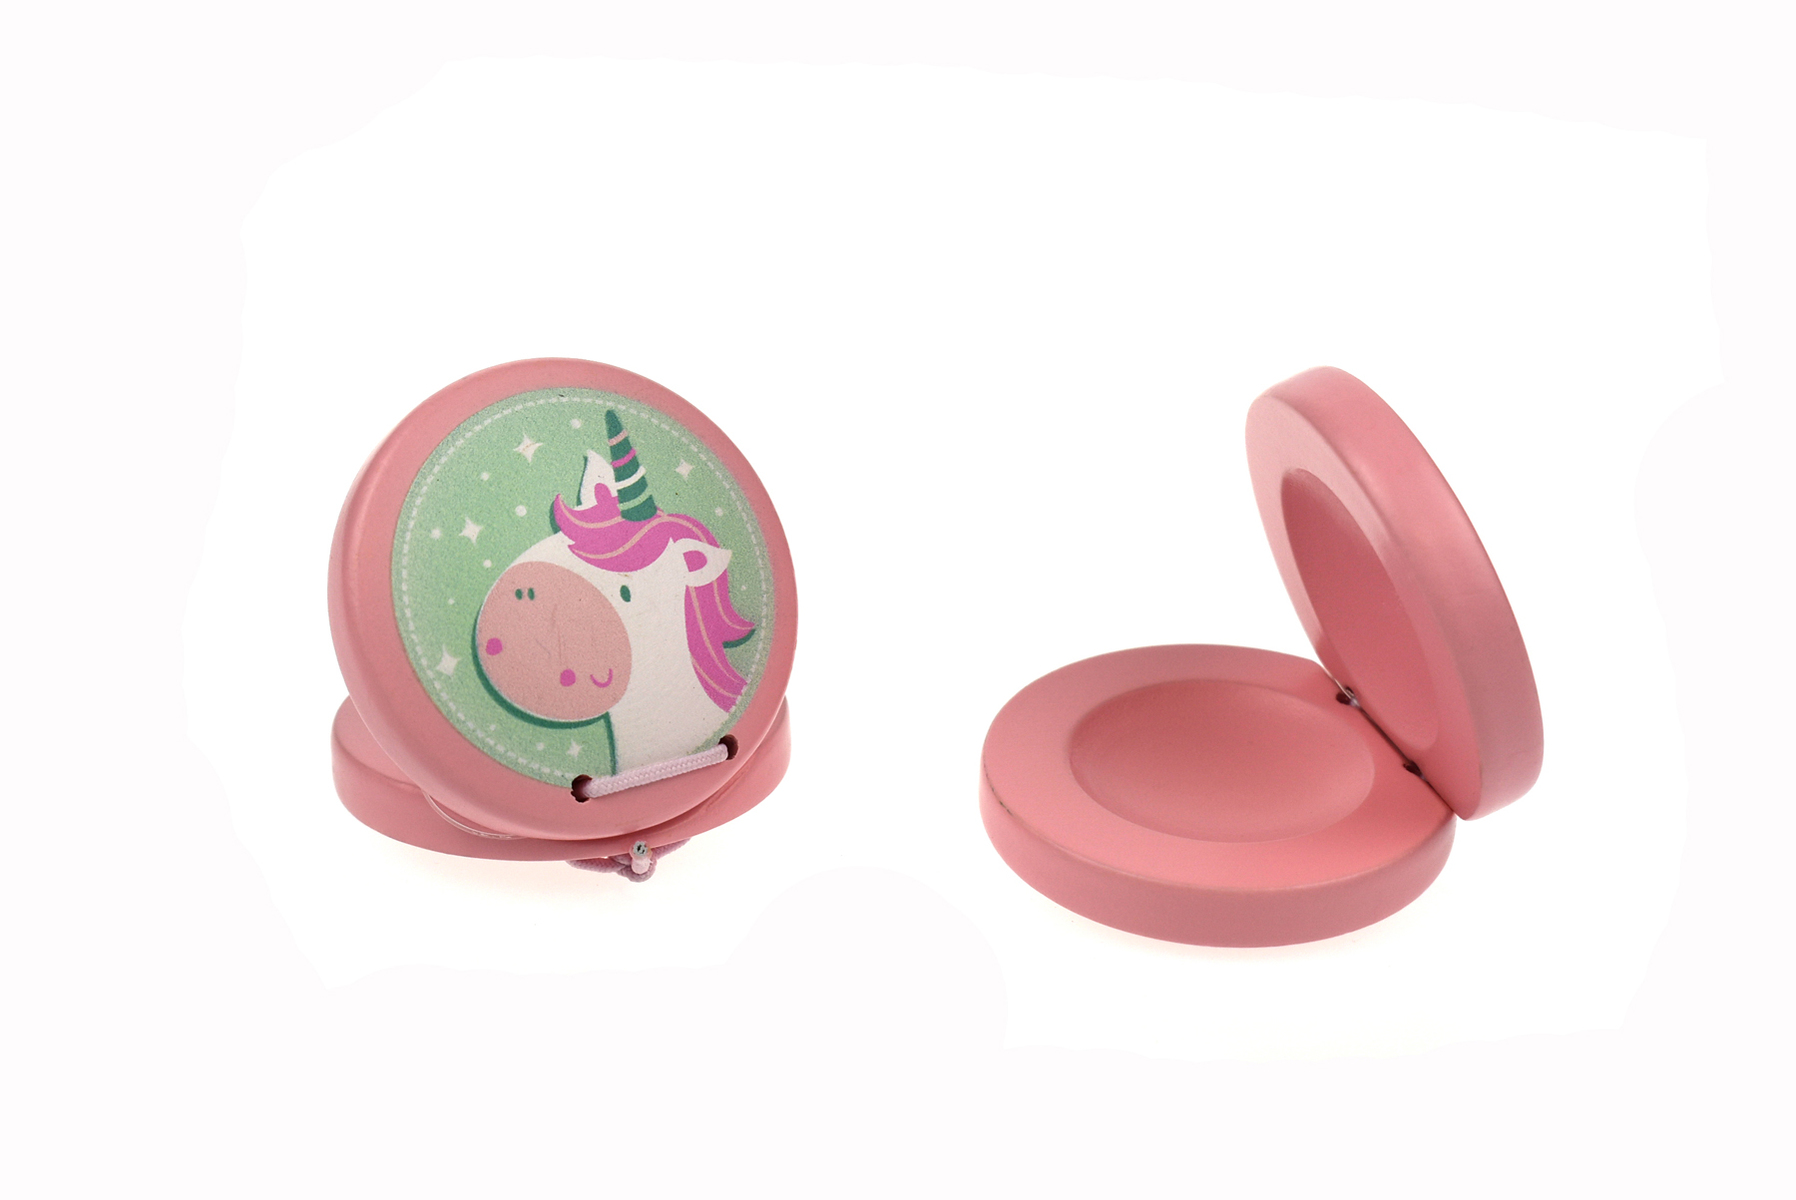 Unicorn wooden castanet by Kaper Kids 3+